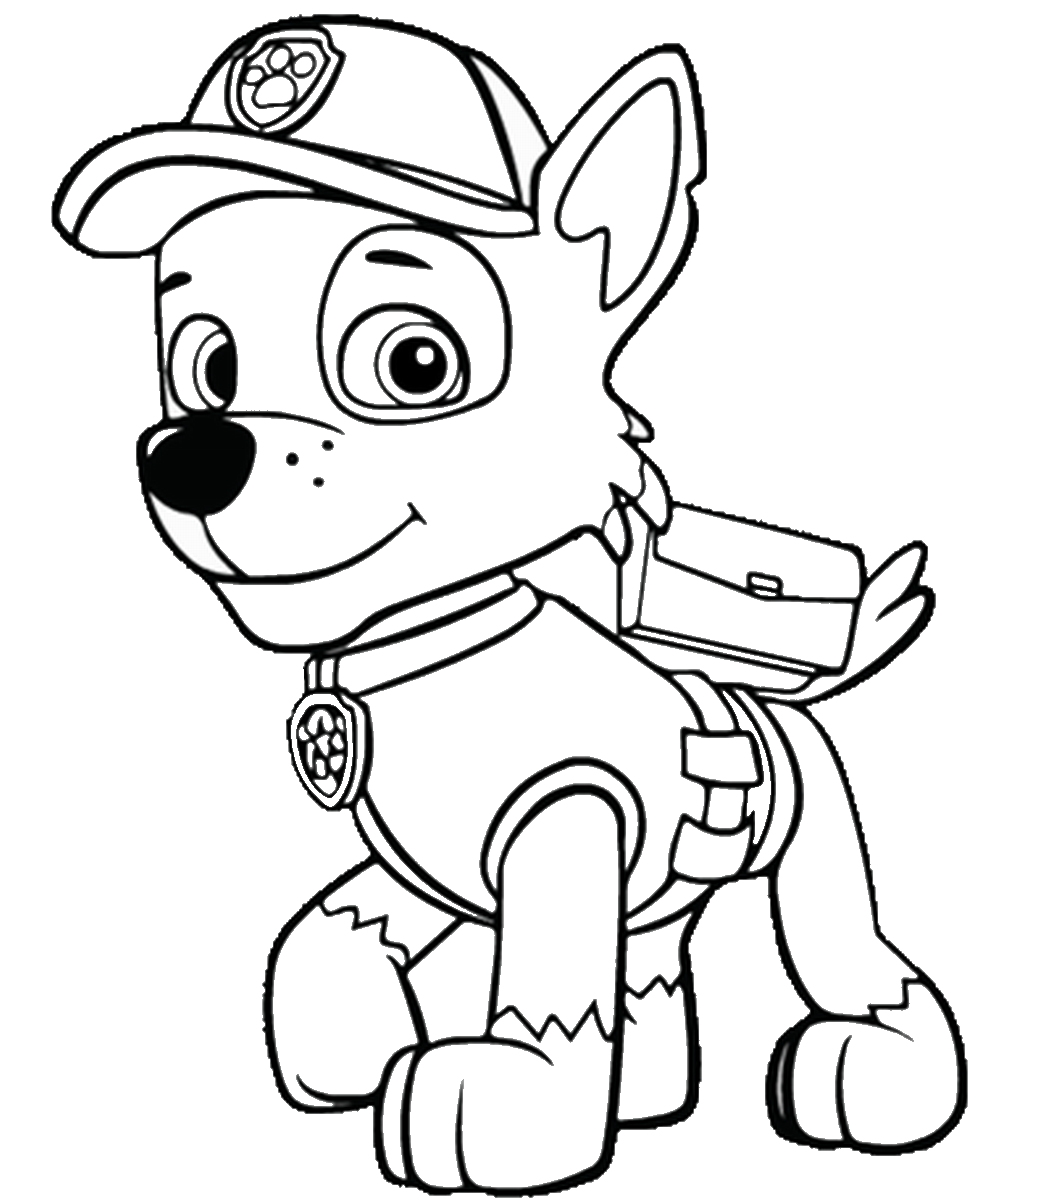 paw patrol coloring outline paw patrol coloring pages printable free coloring sheets patrol paw coloring outline